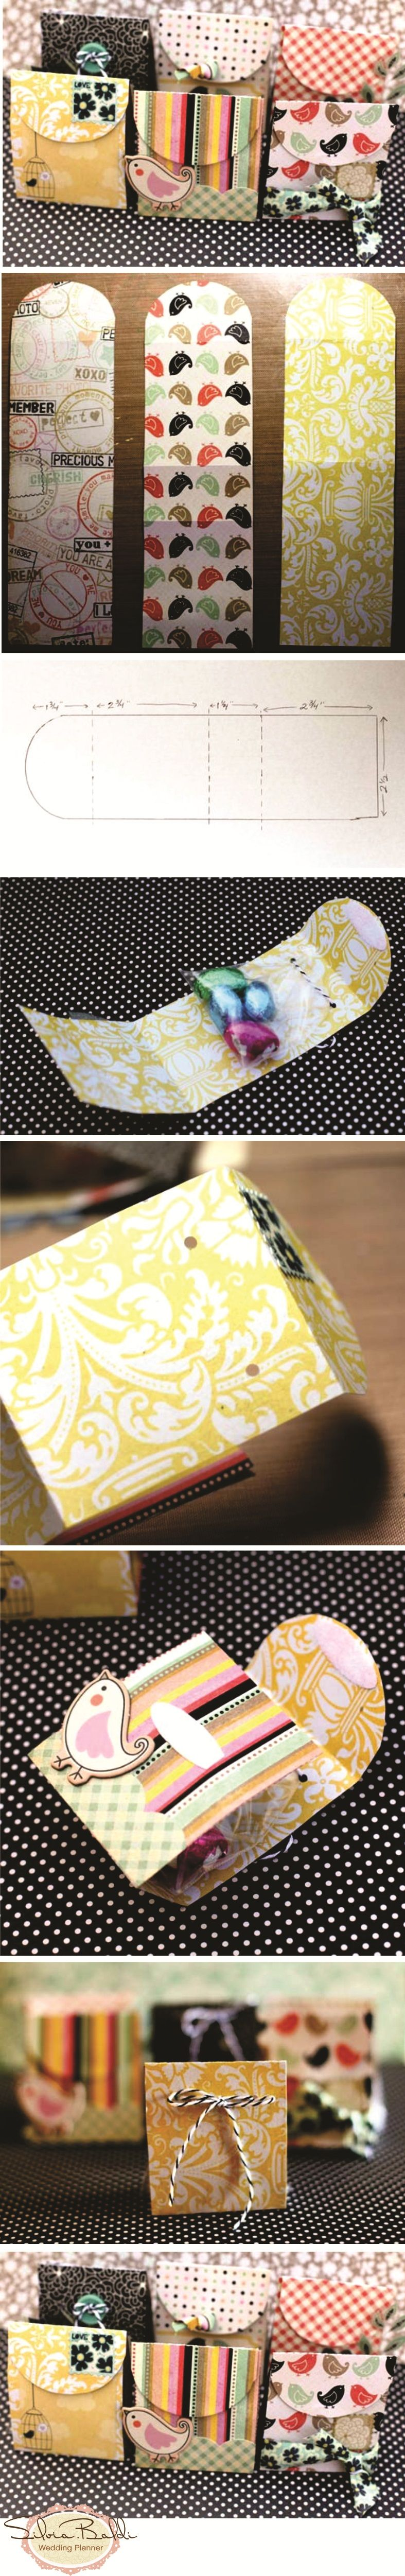 Diy gift boxes manualidades pinterest bags party favors and